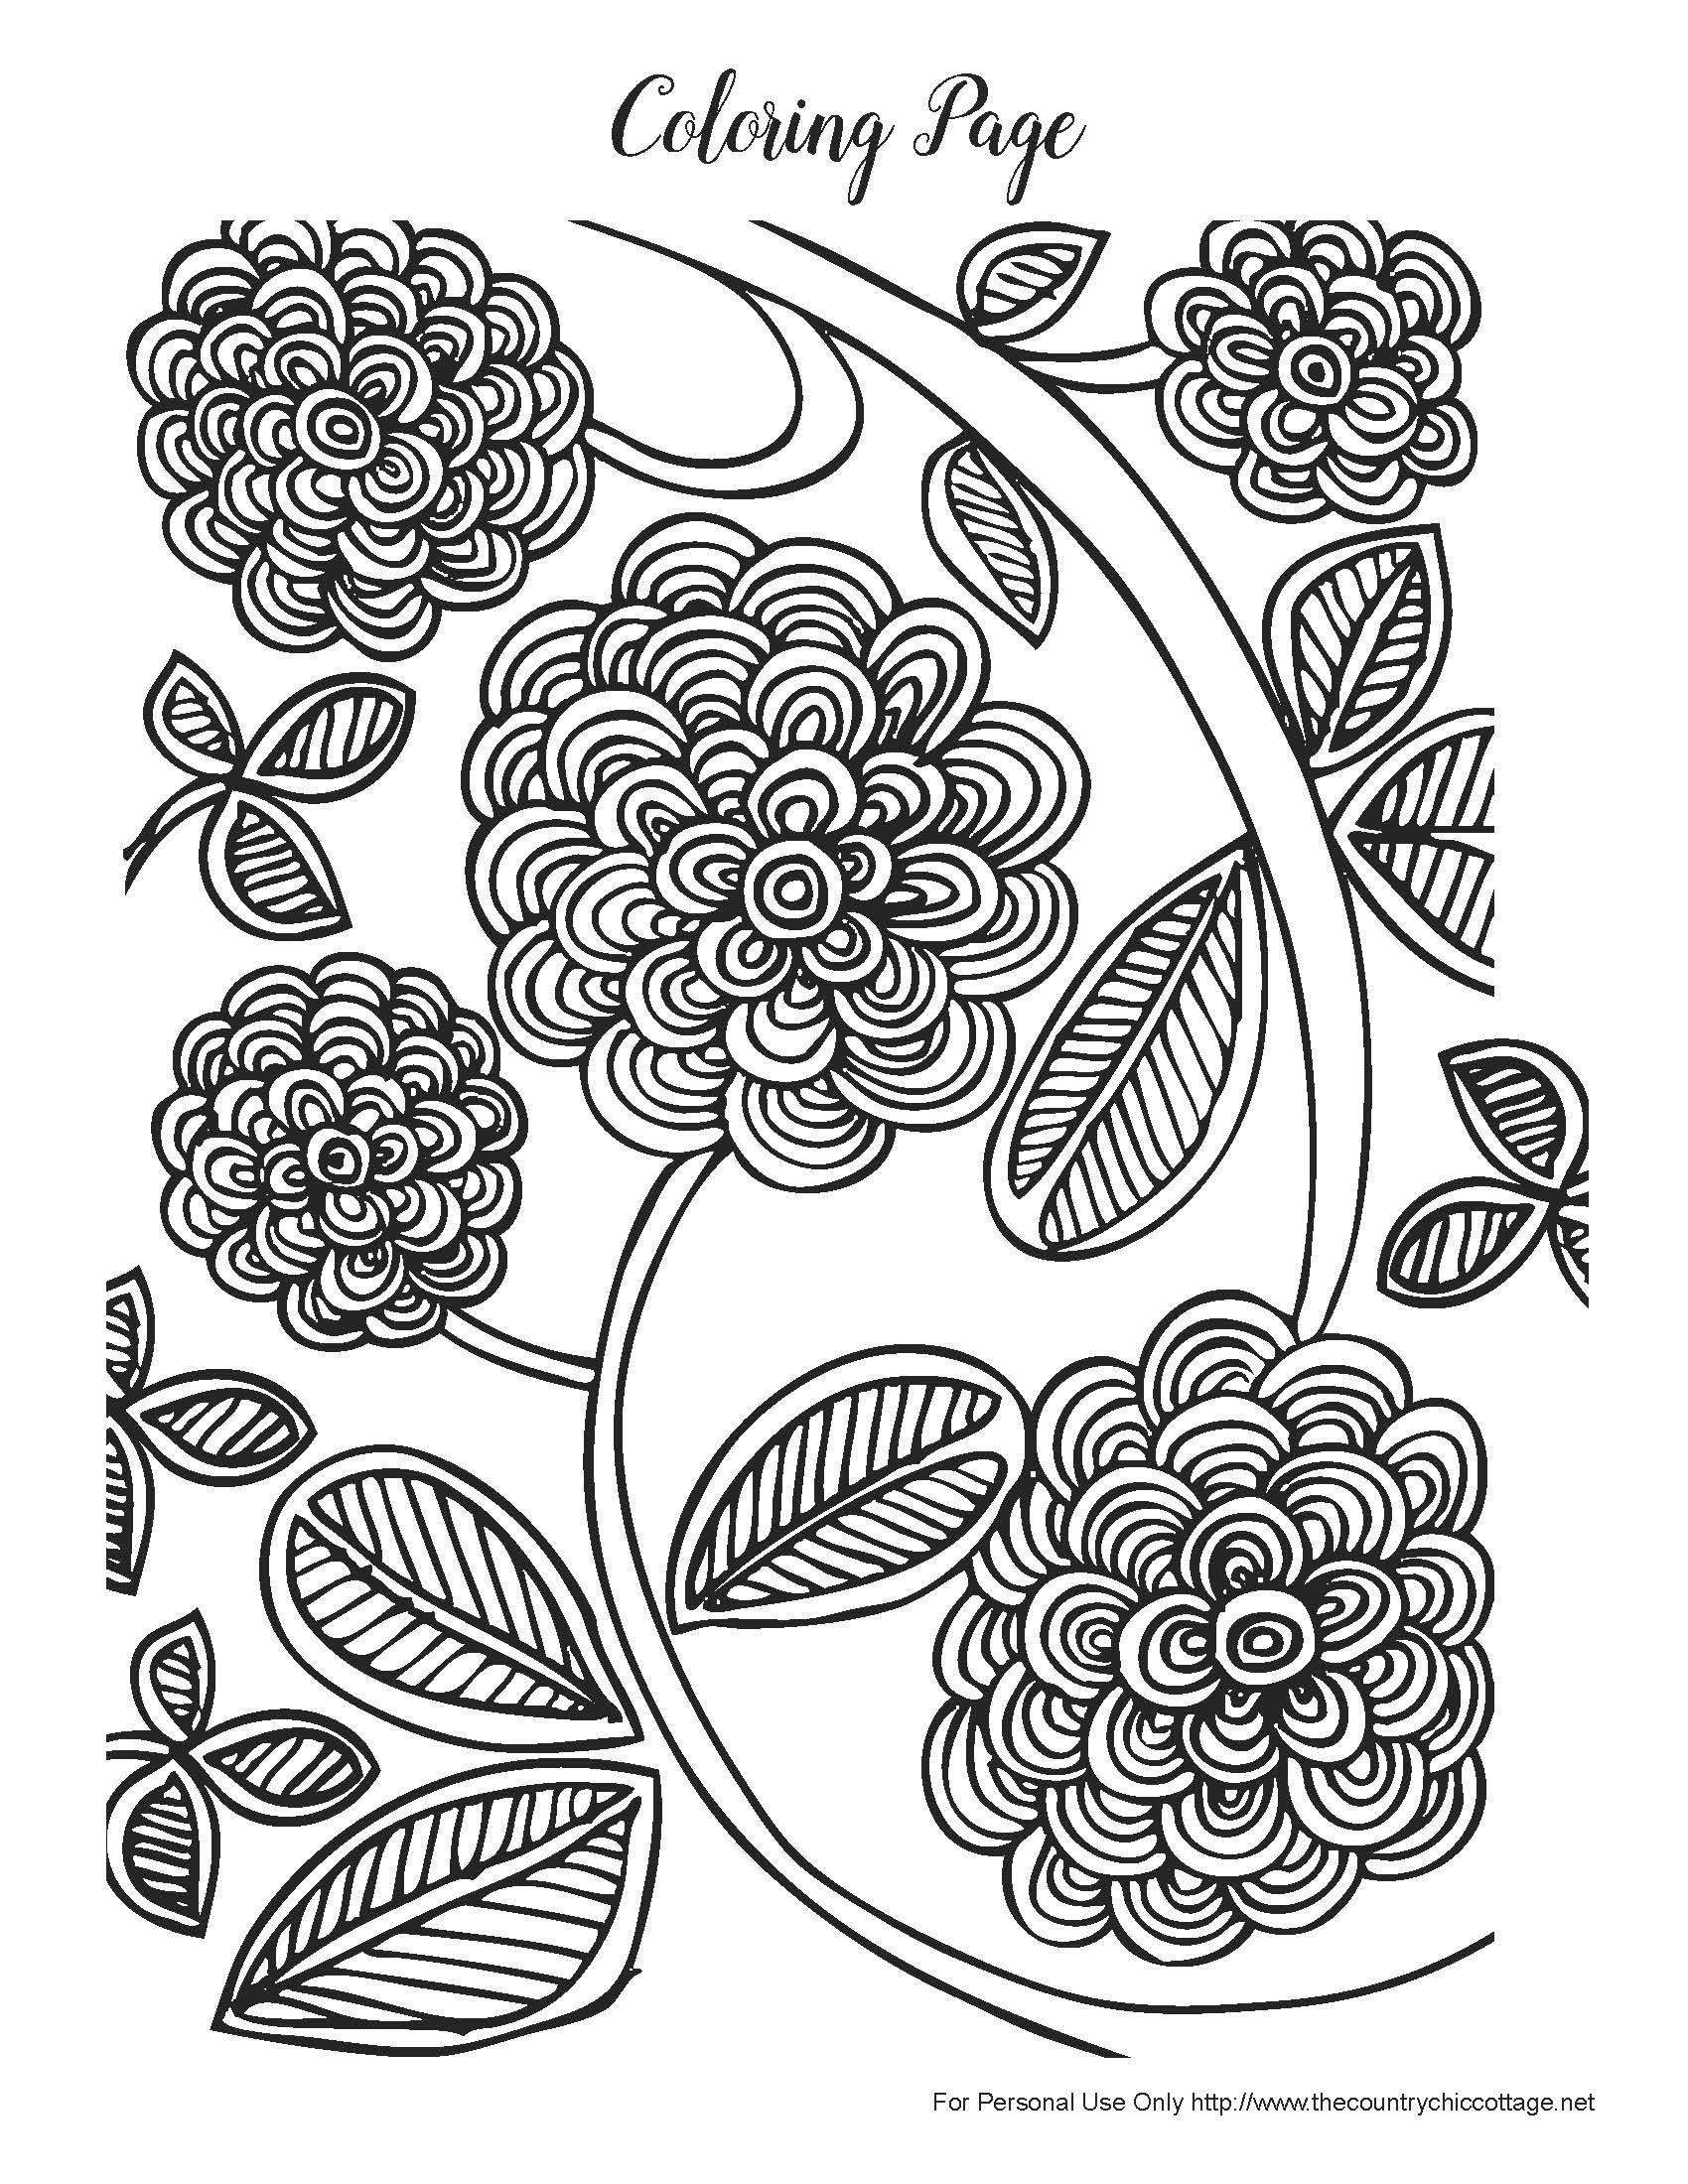 Free coloring pages spring flowers - Download These Free Spring Coloring Pages For Adults Today Color Pretty Flowers With Intricate Designs